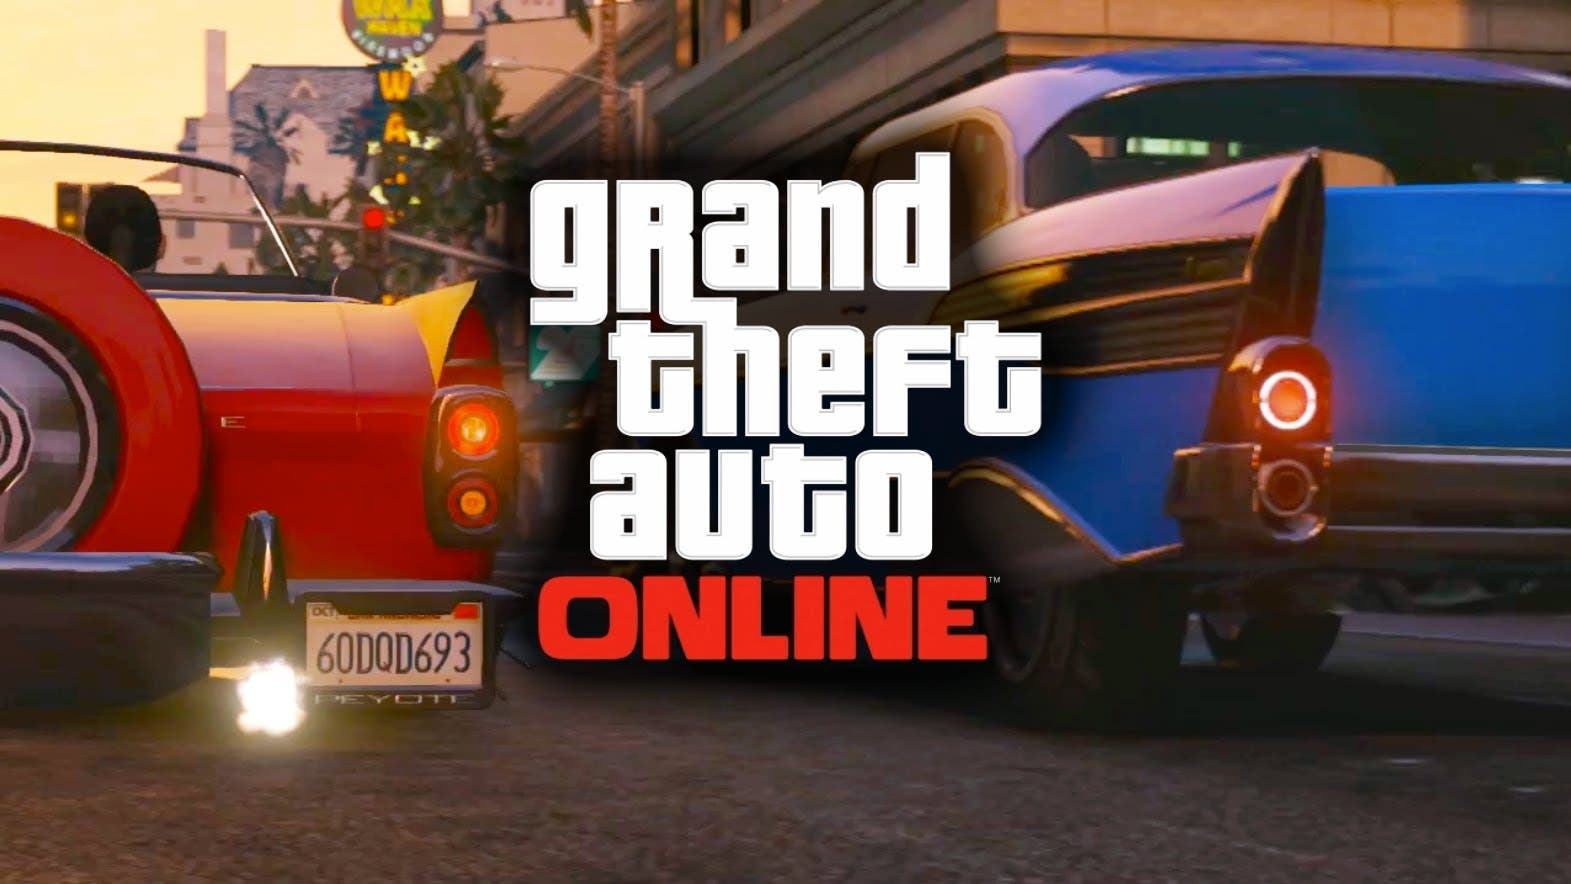 GTA V supera las 130 millones de copias vendidas